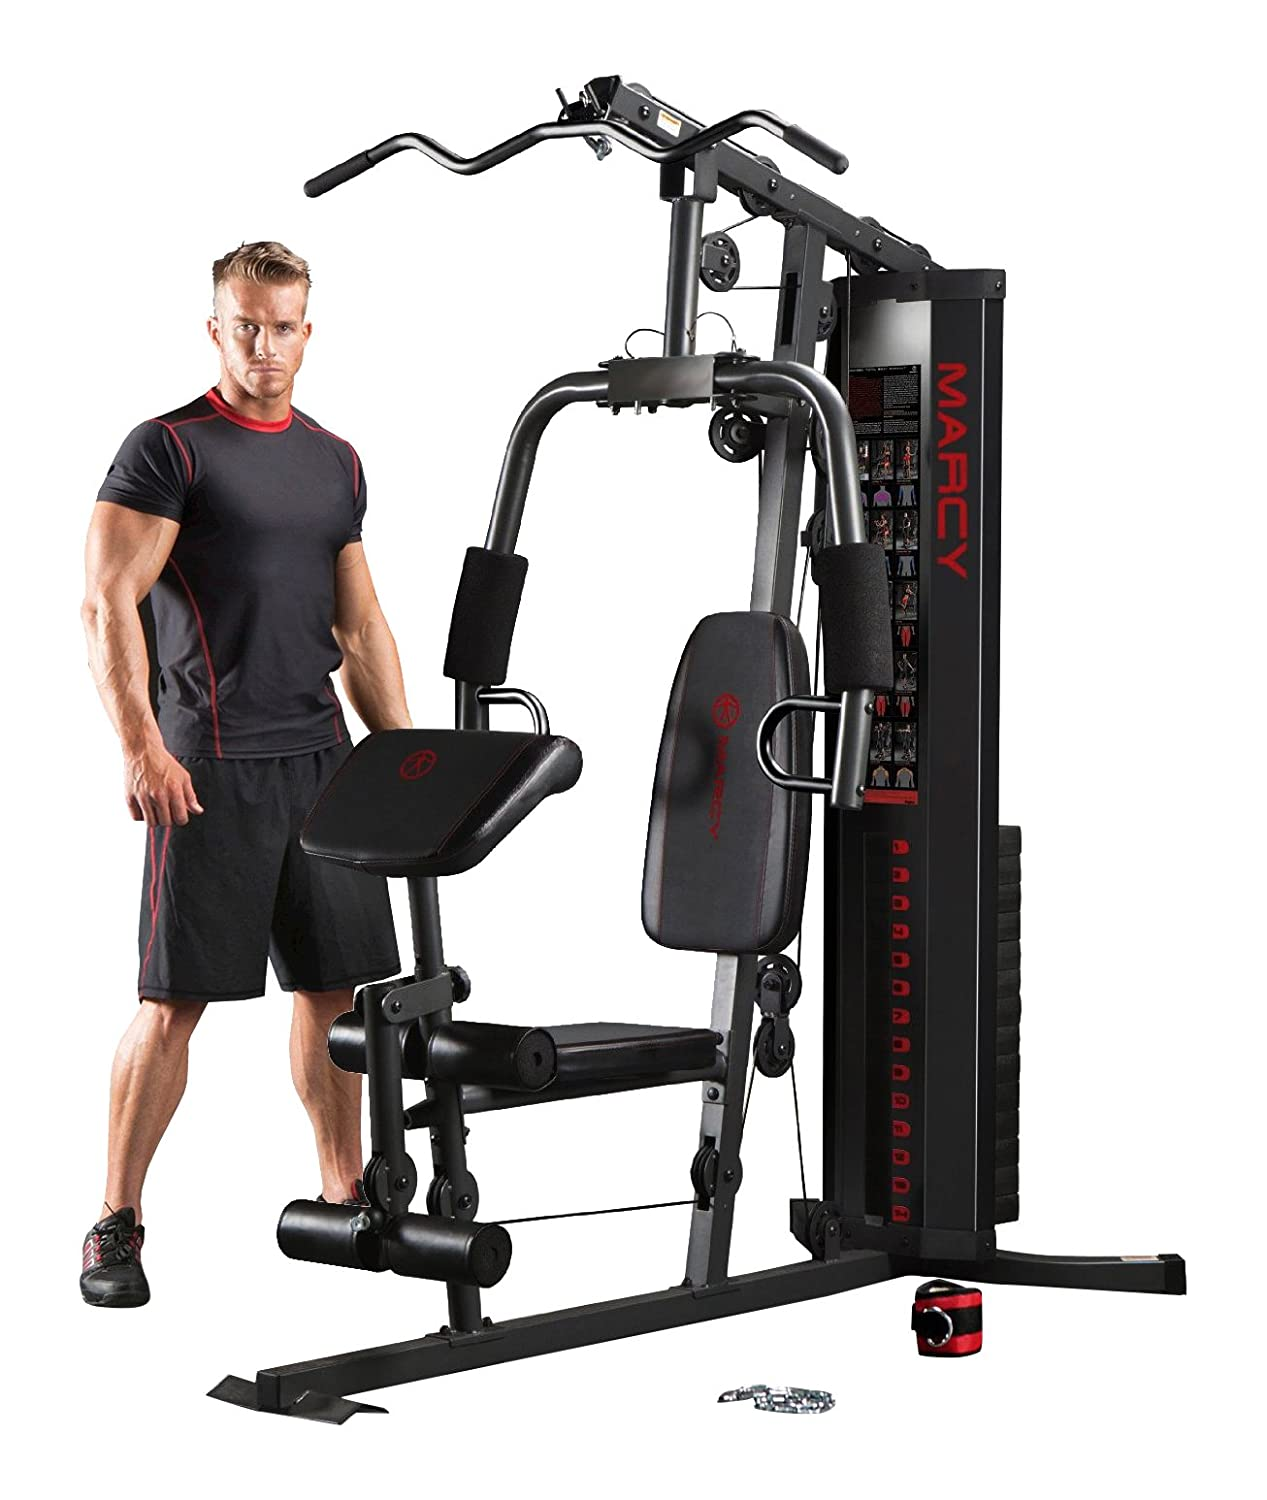 Marcy Eclipse HG3000 Compact Home Gym with Weight Stack, 68 kg:  Amazon.co.uk: Sports & Outdoors